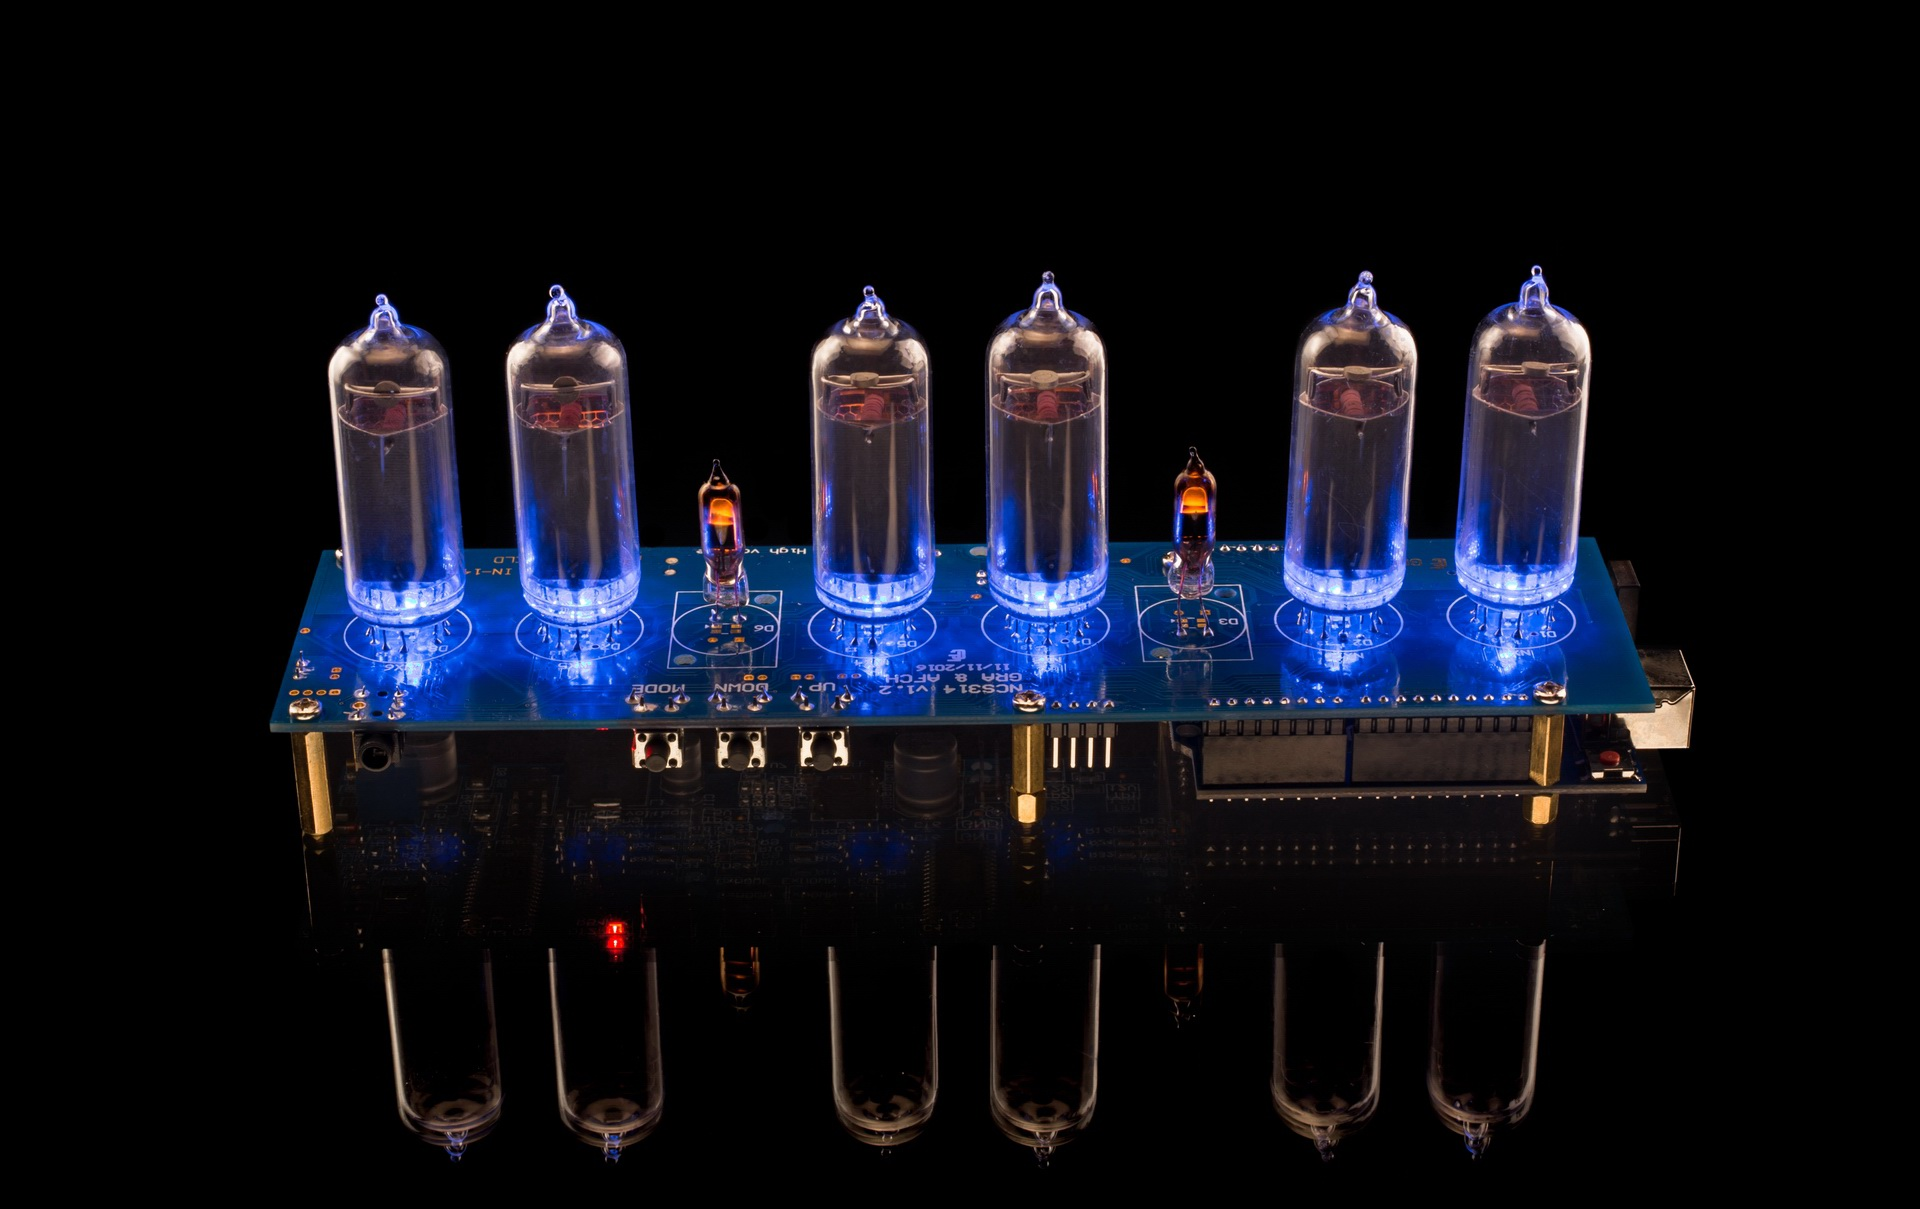 Diy Kit Nixie Tubes Clock Arduino Shield Ncs314 On In 14 Tube Further Schematic Shiled For Photo Gallery